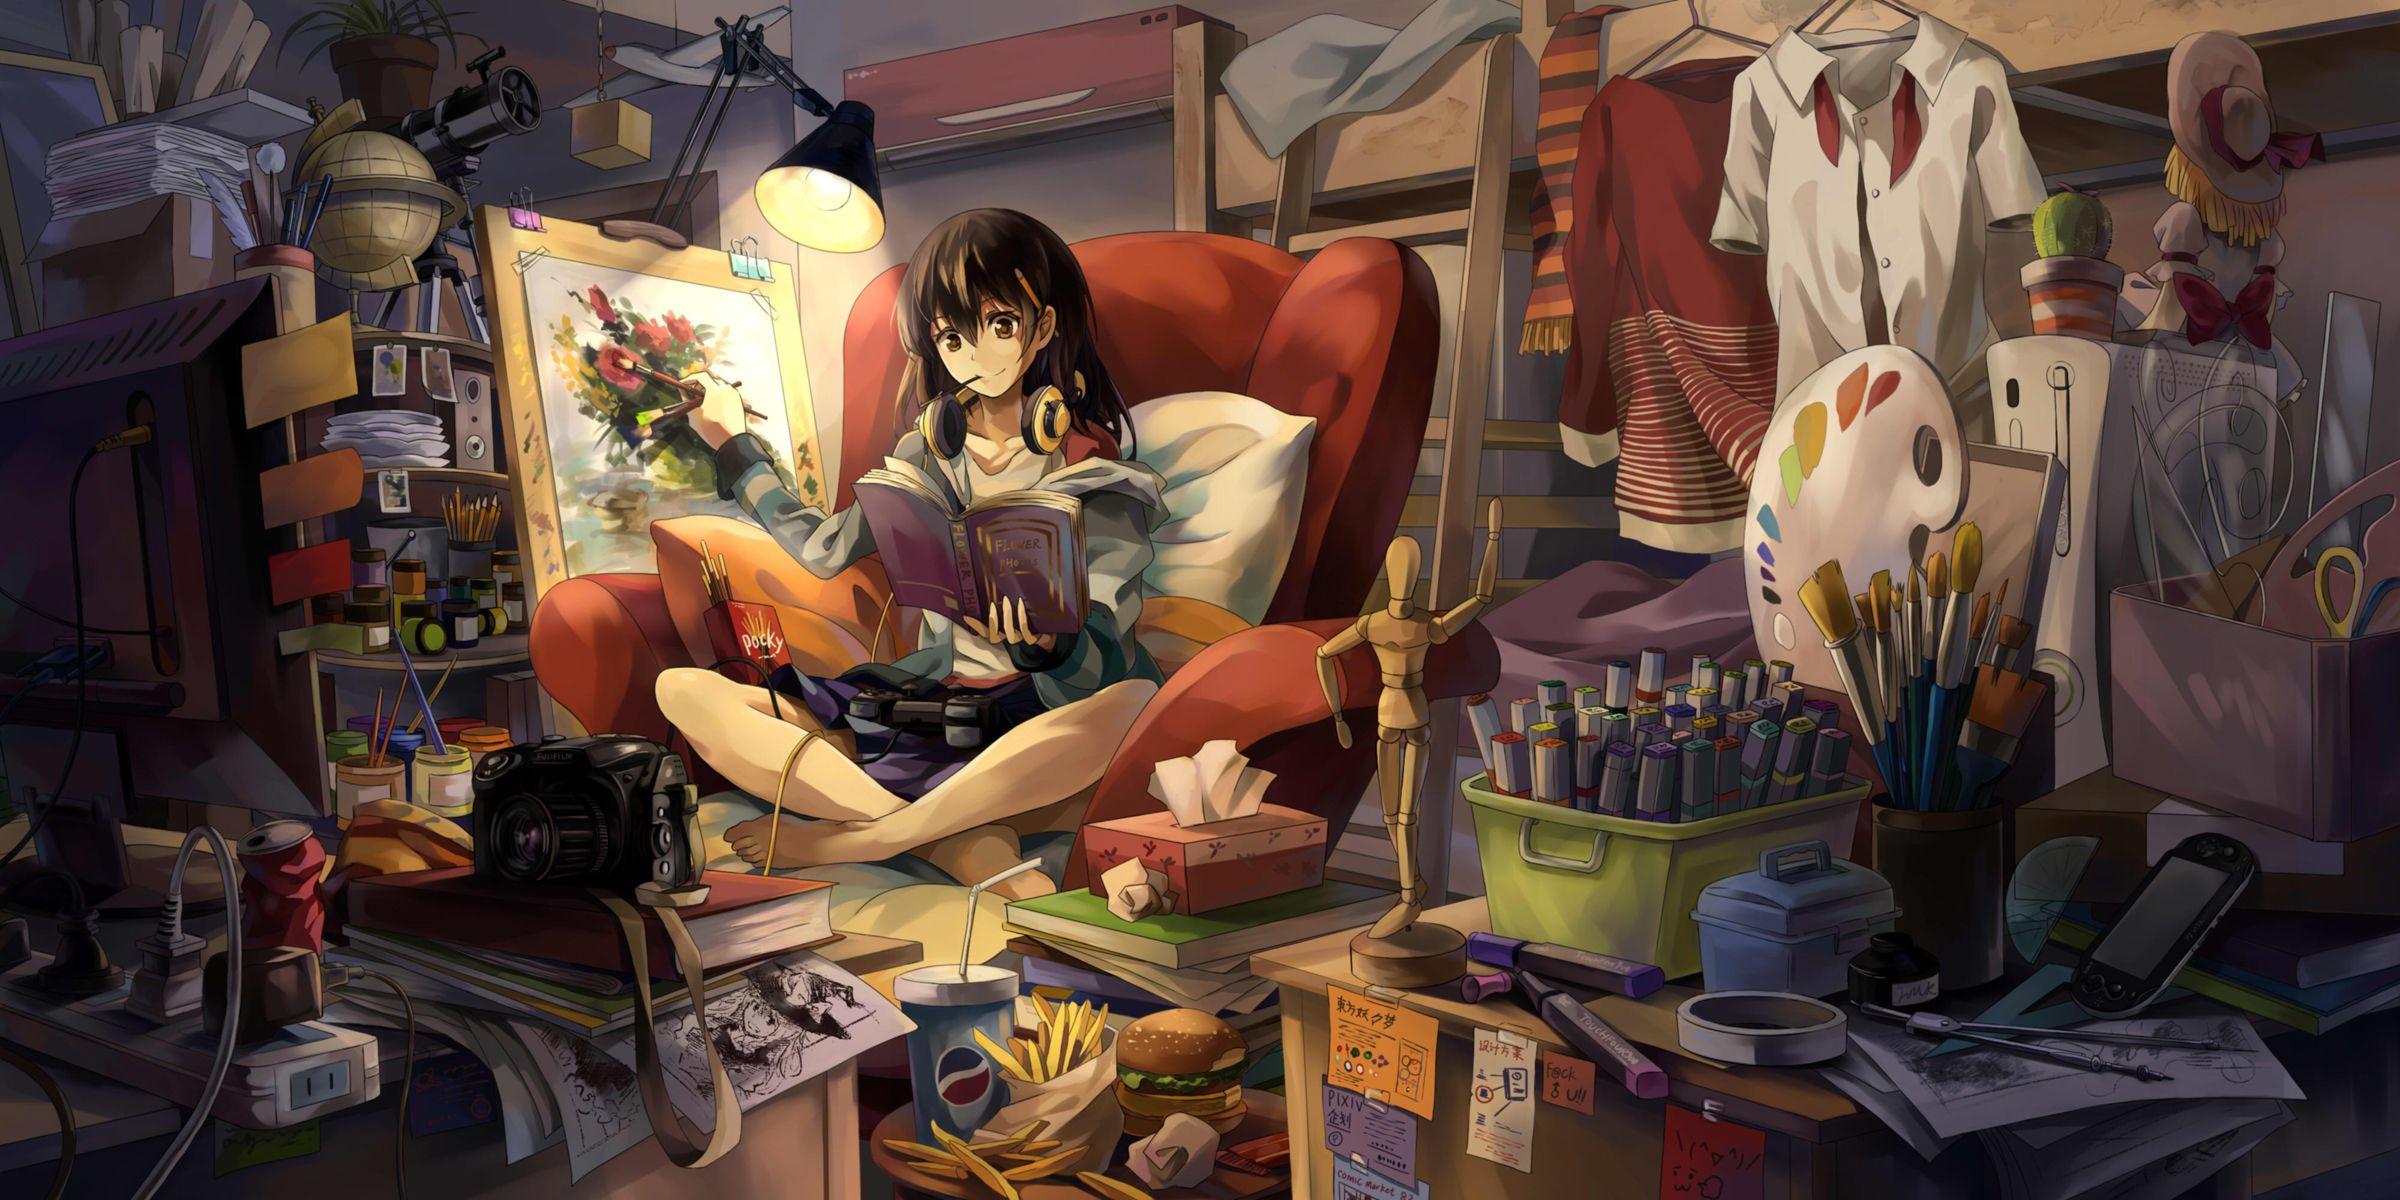 My Collection Of Anime Sceneries Anime Wallpaper Painting Of Girl Anime Scenery